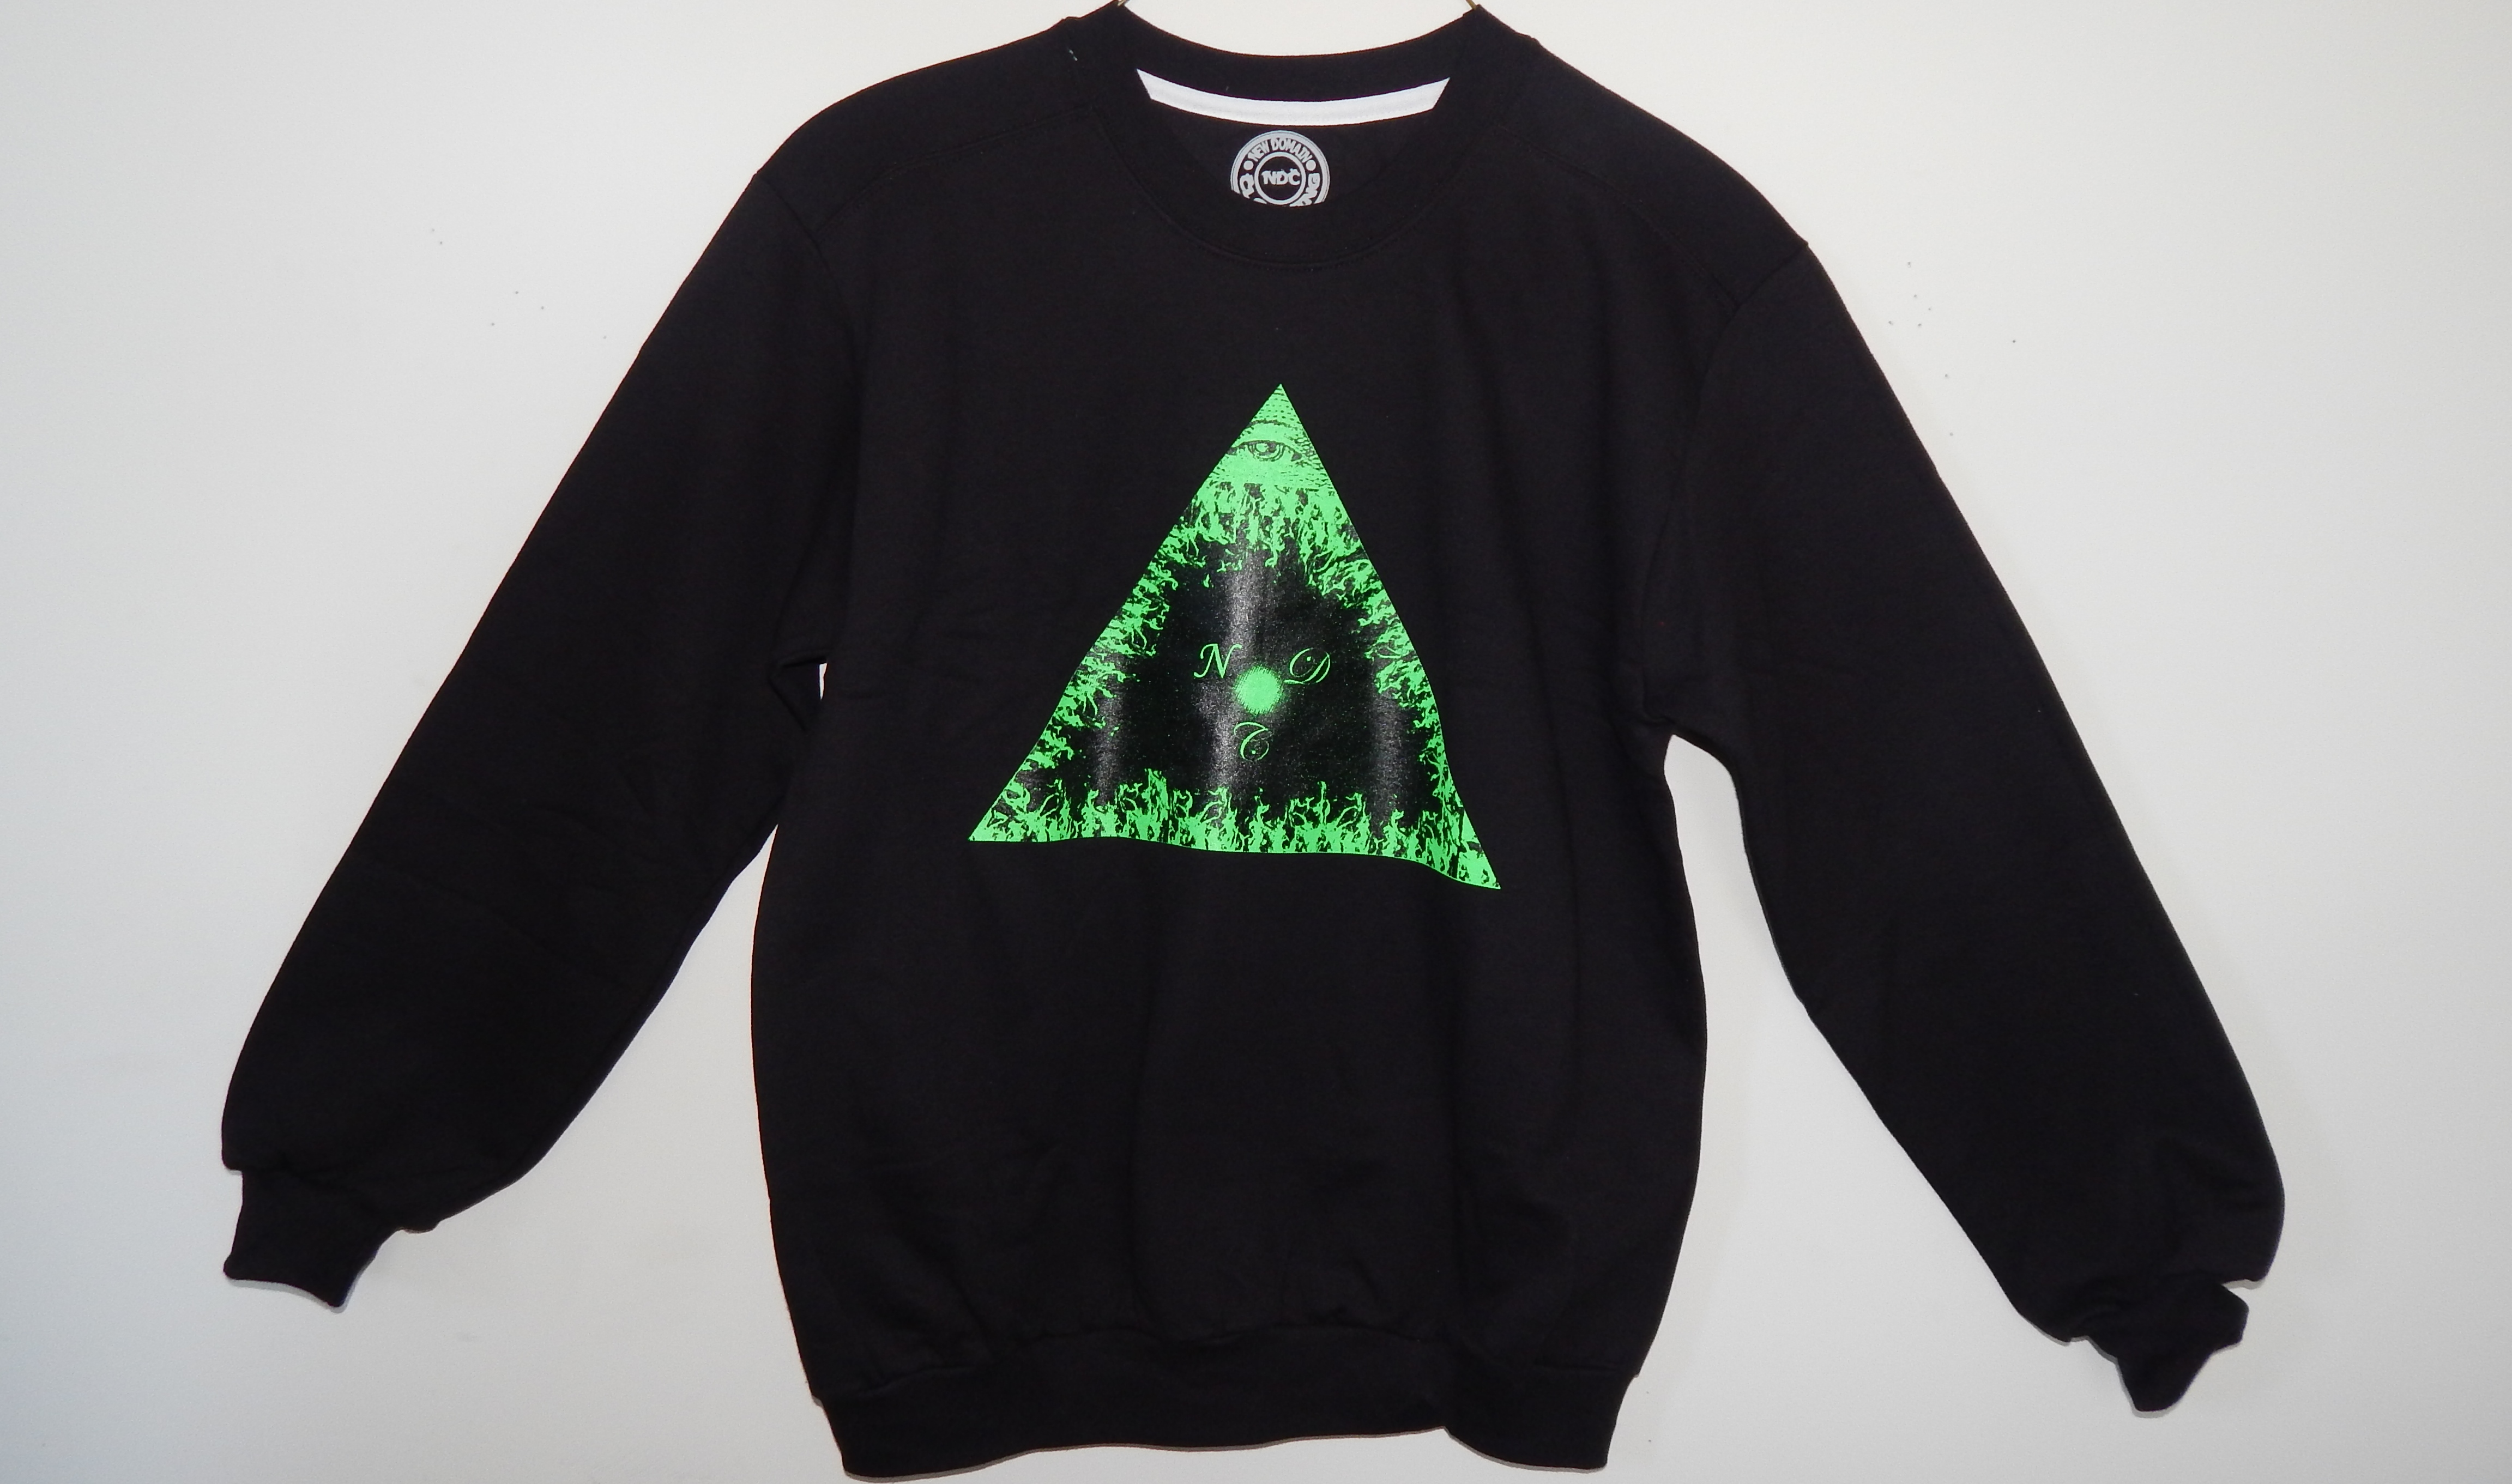 NDC Tri-Fire Crewneck / New Domain Clothing